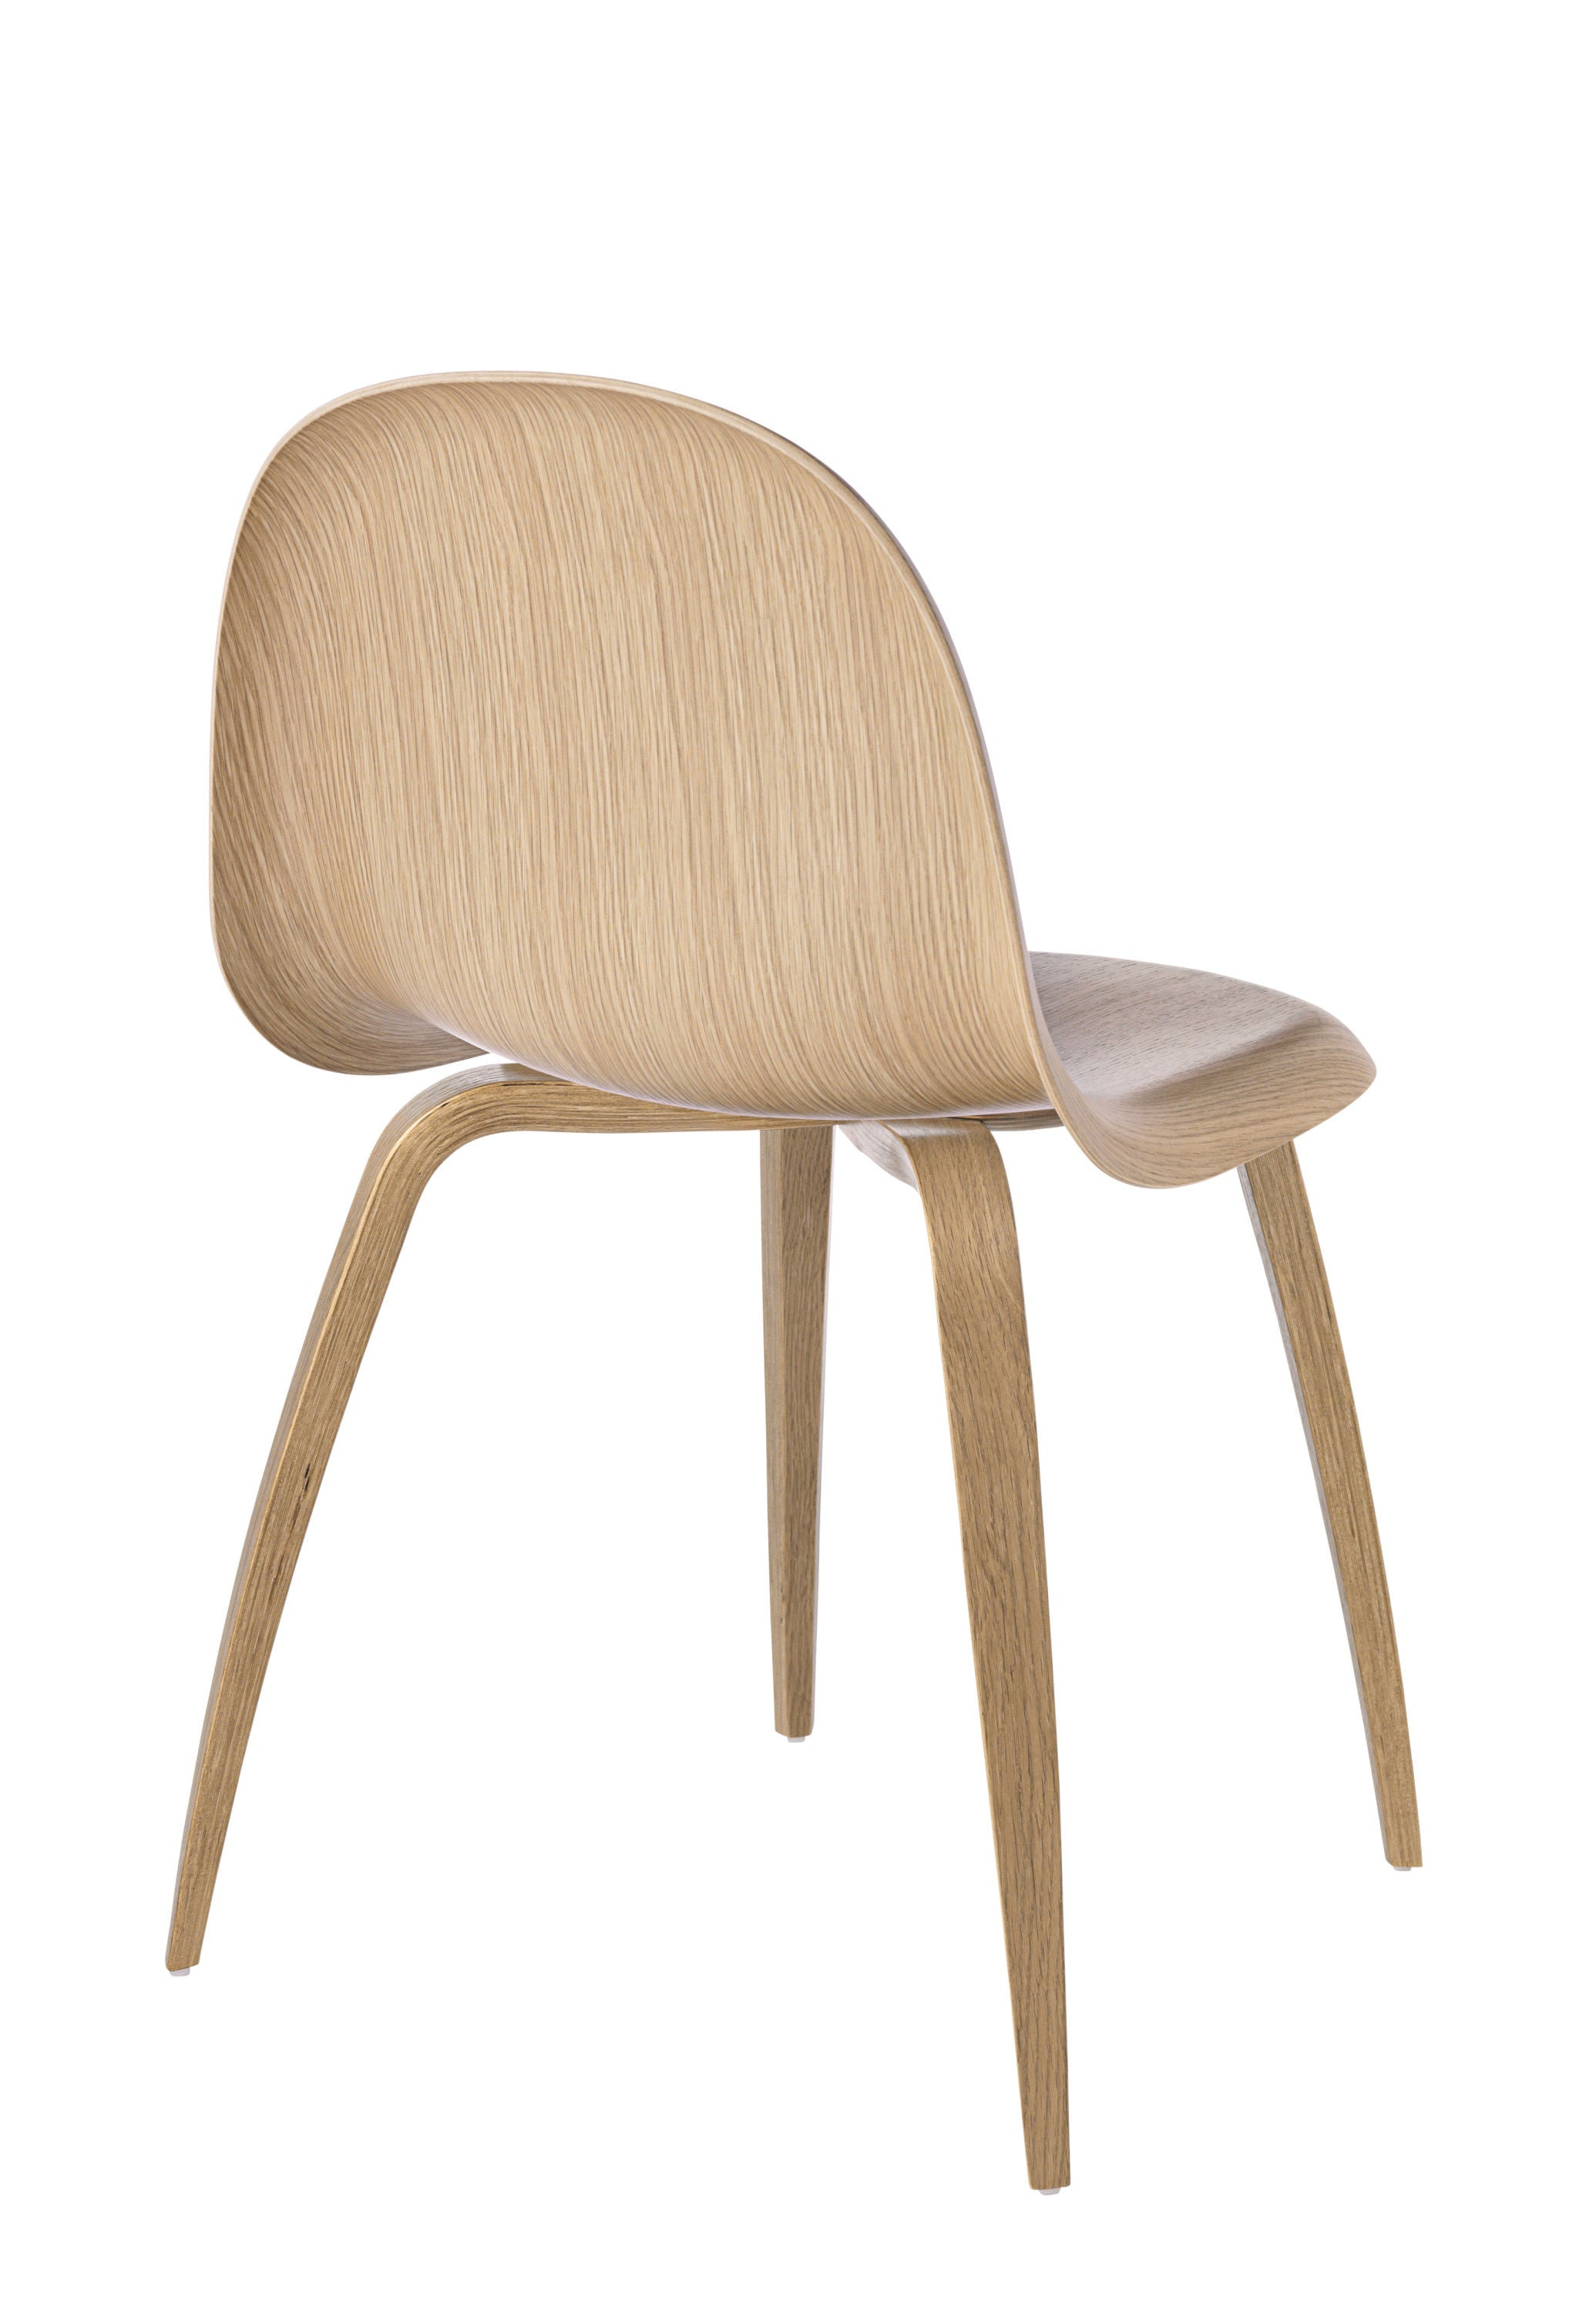 3D Dining Chair - Un-upholstered Oak base, Oak shell fra GUBI